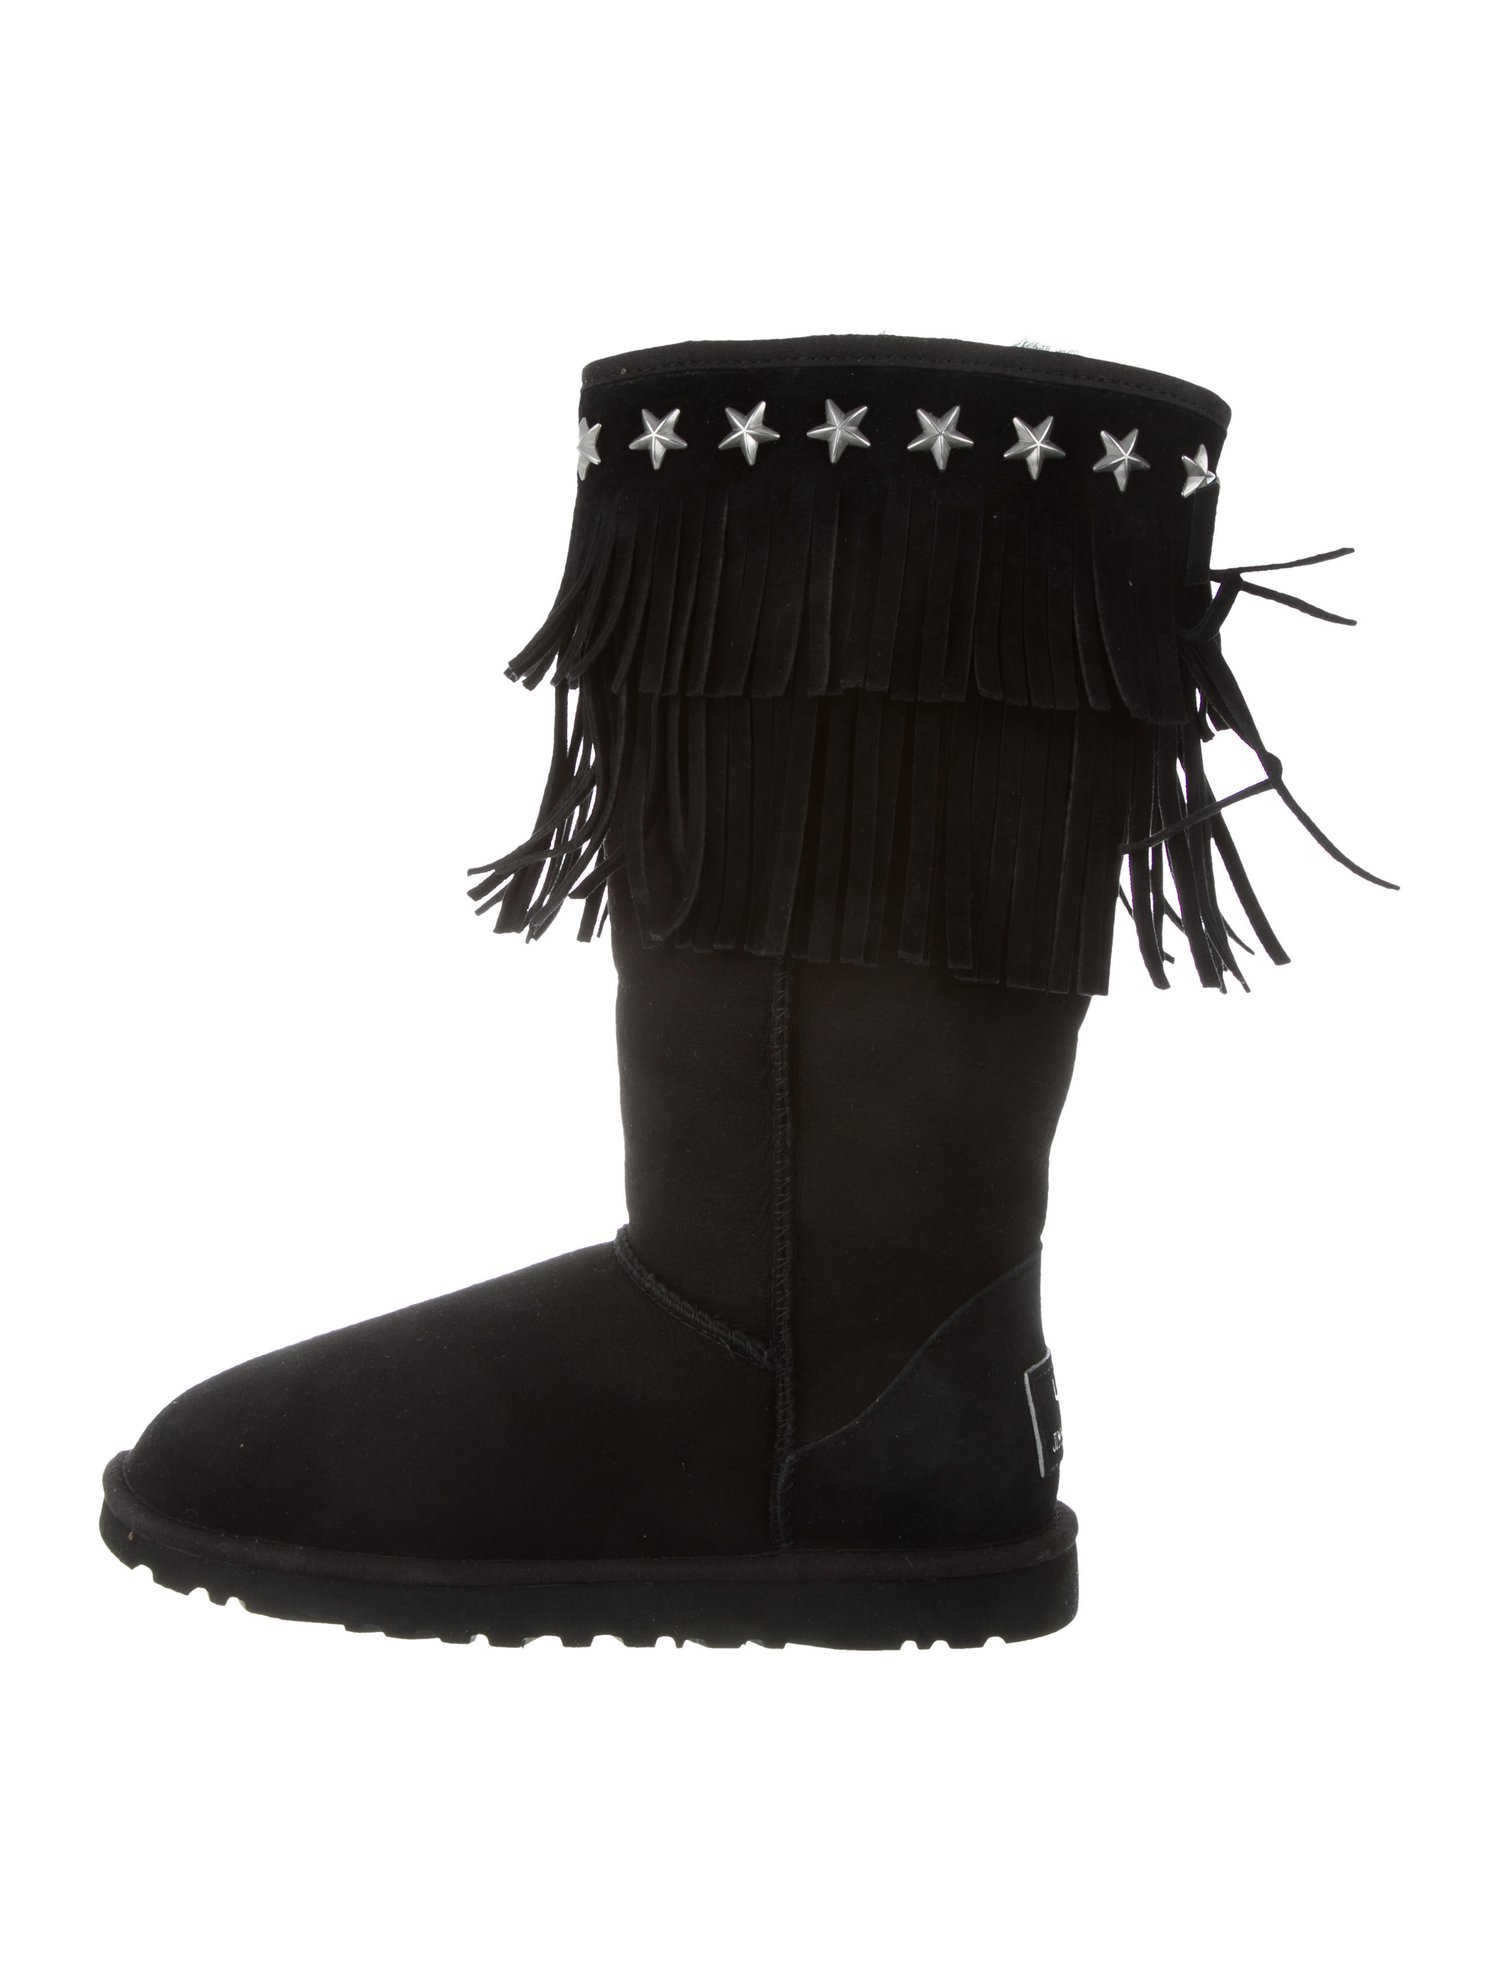 JIMMY CHOO & UGG Embellished Sora Boots $195,  The Real Real